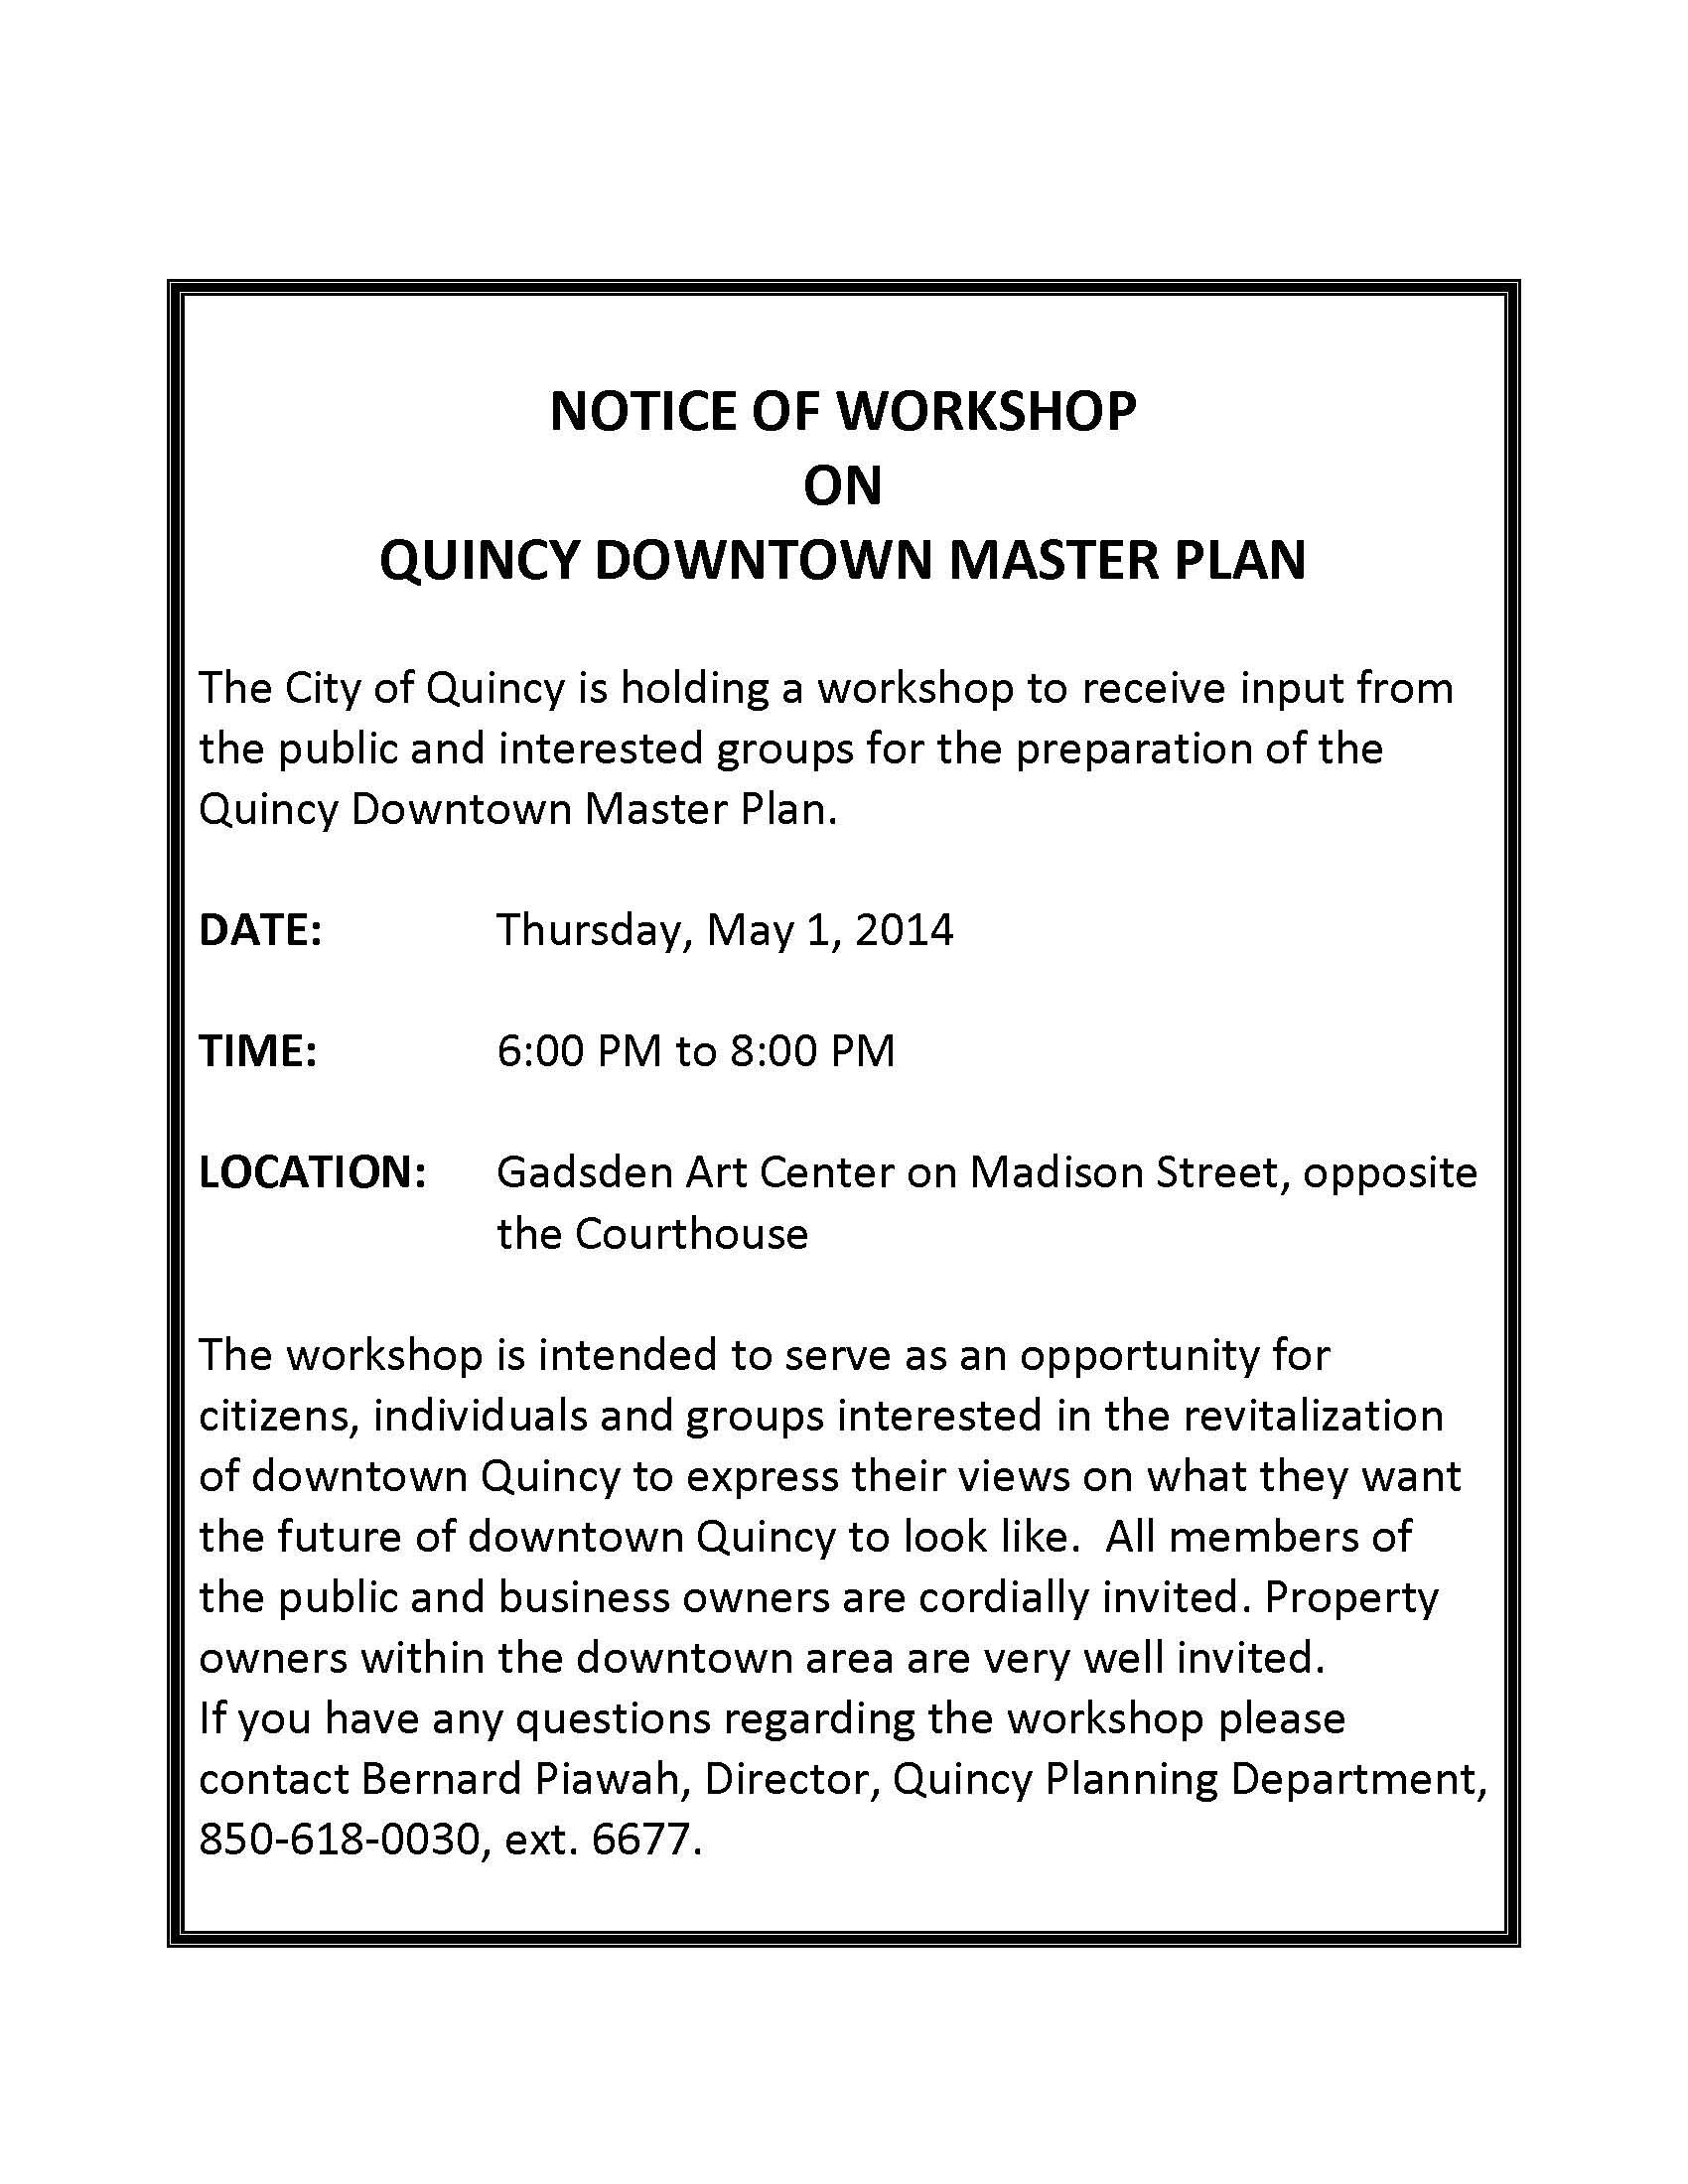 Downtown Master Plan WORKSHOP-1.jpg web_Page_1